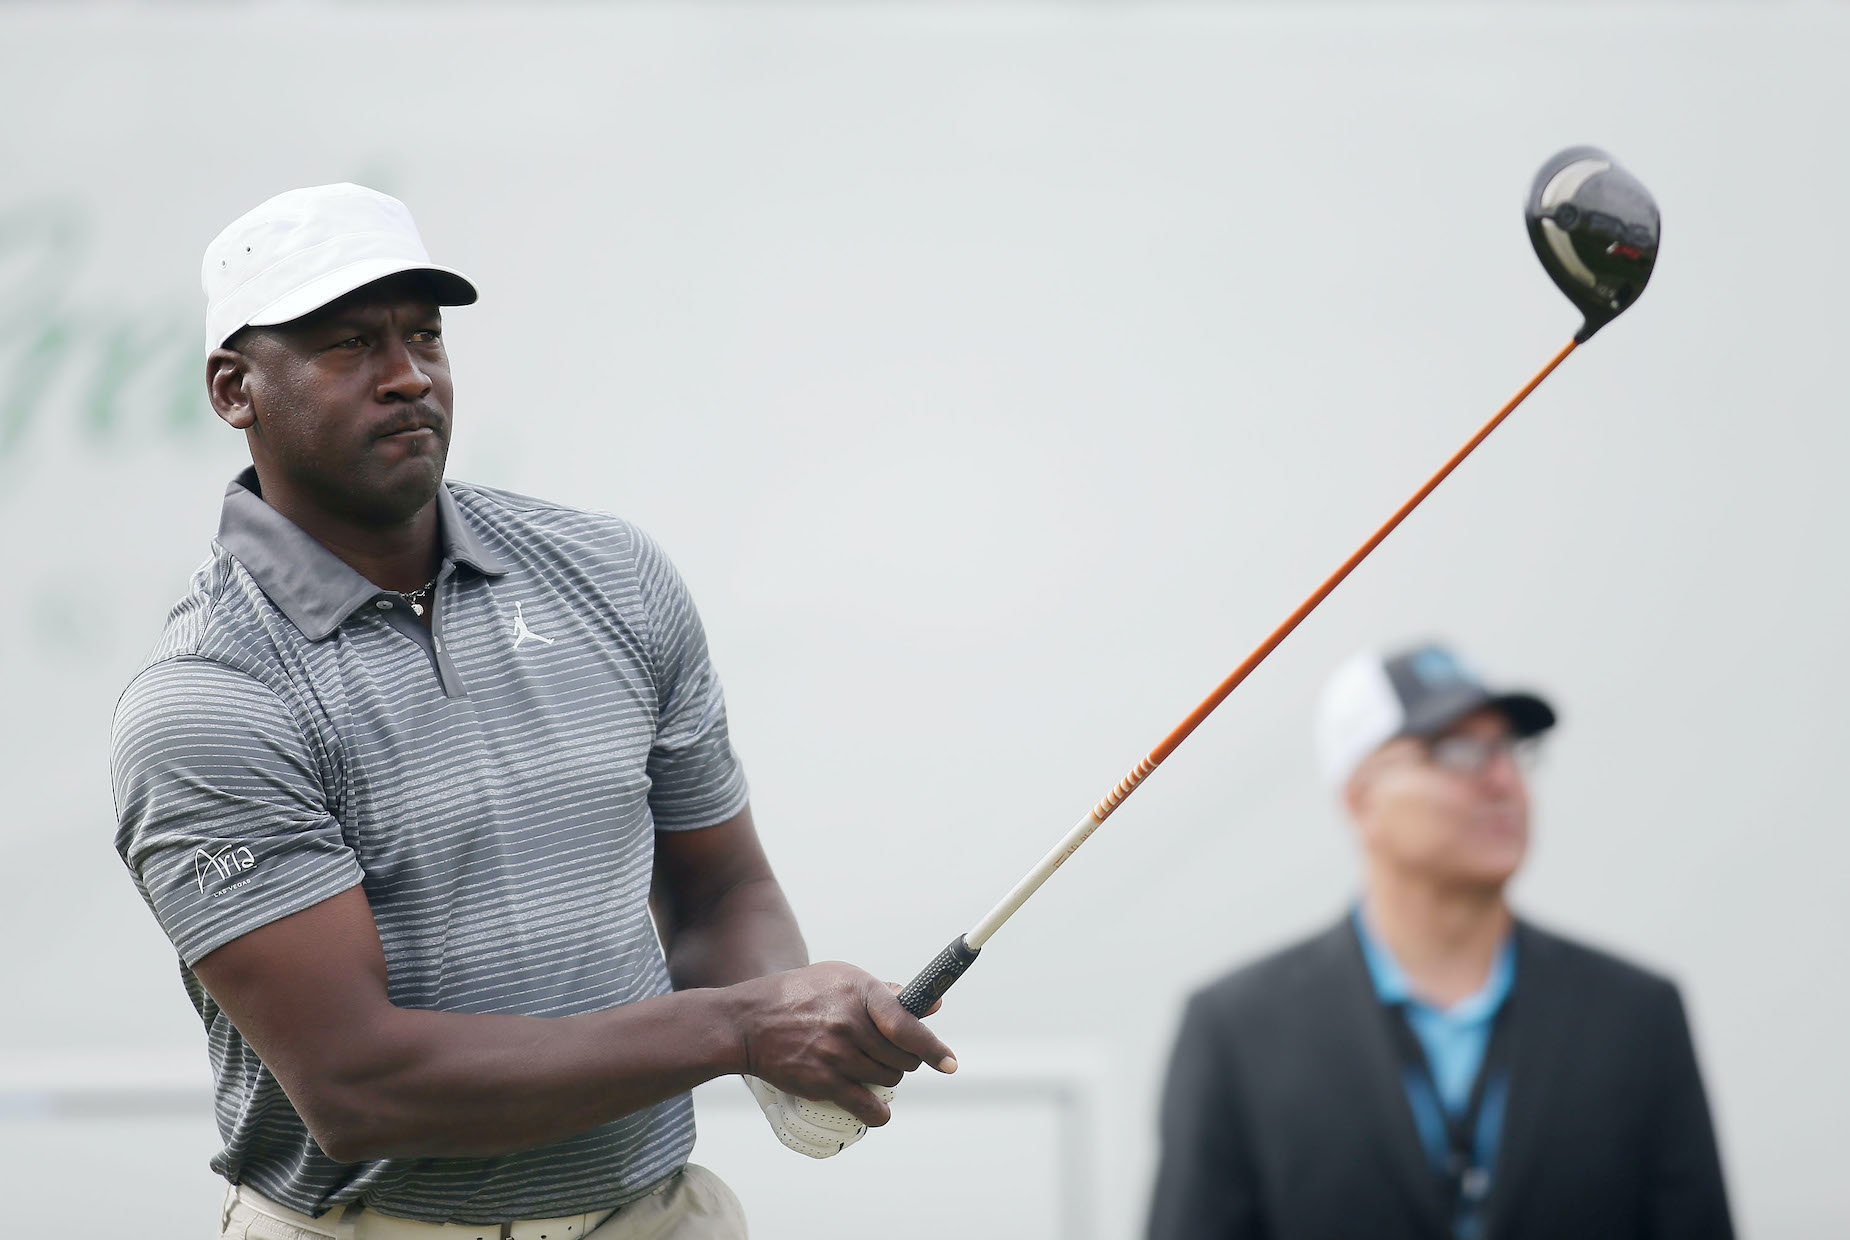 Michael Jordan beat Brooks Koepka at golf and trash-talked him en route to the win.